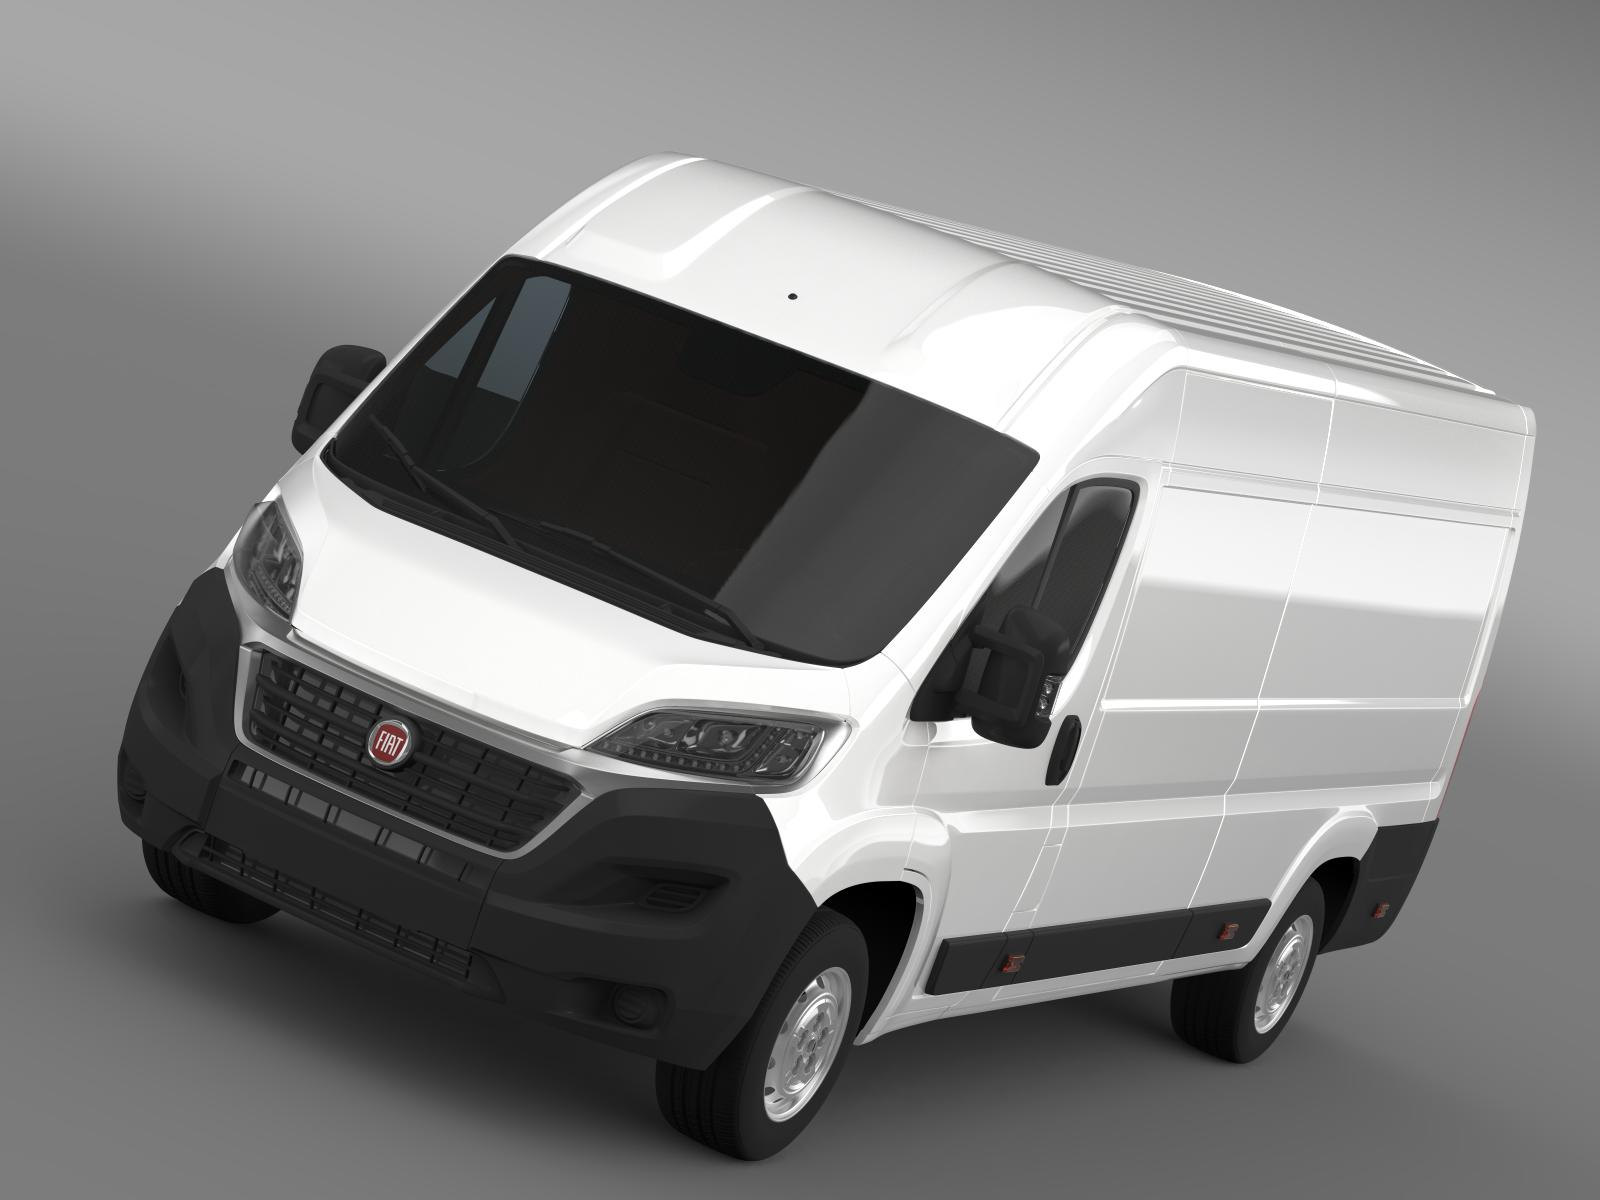 fiat ducato van l4h2 2015 3d model. Black Bedroom Furniture Sets. Home Design Ideas